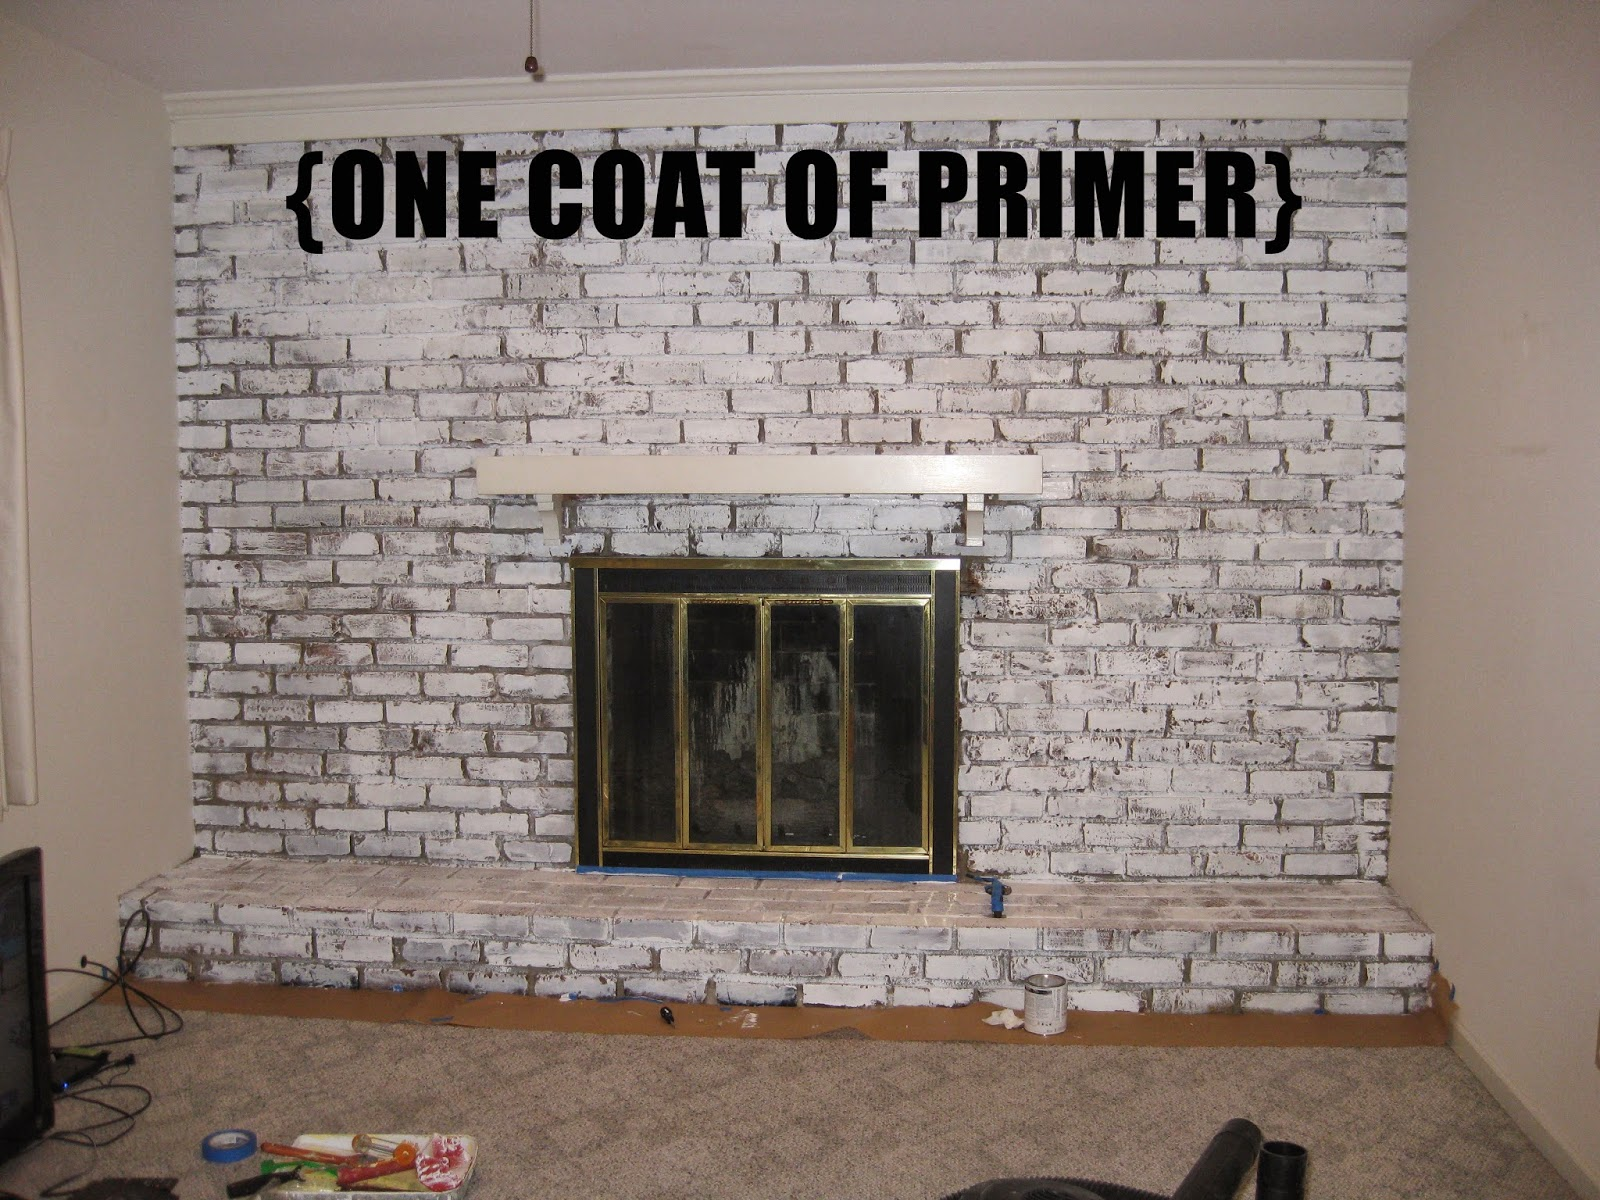 Painting Over Fireplace According To Jax Before After Painting A Brick Fireplace